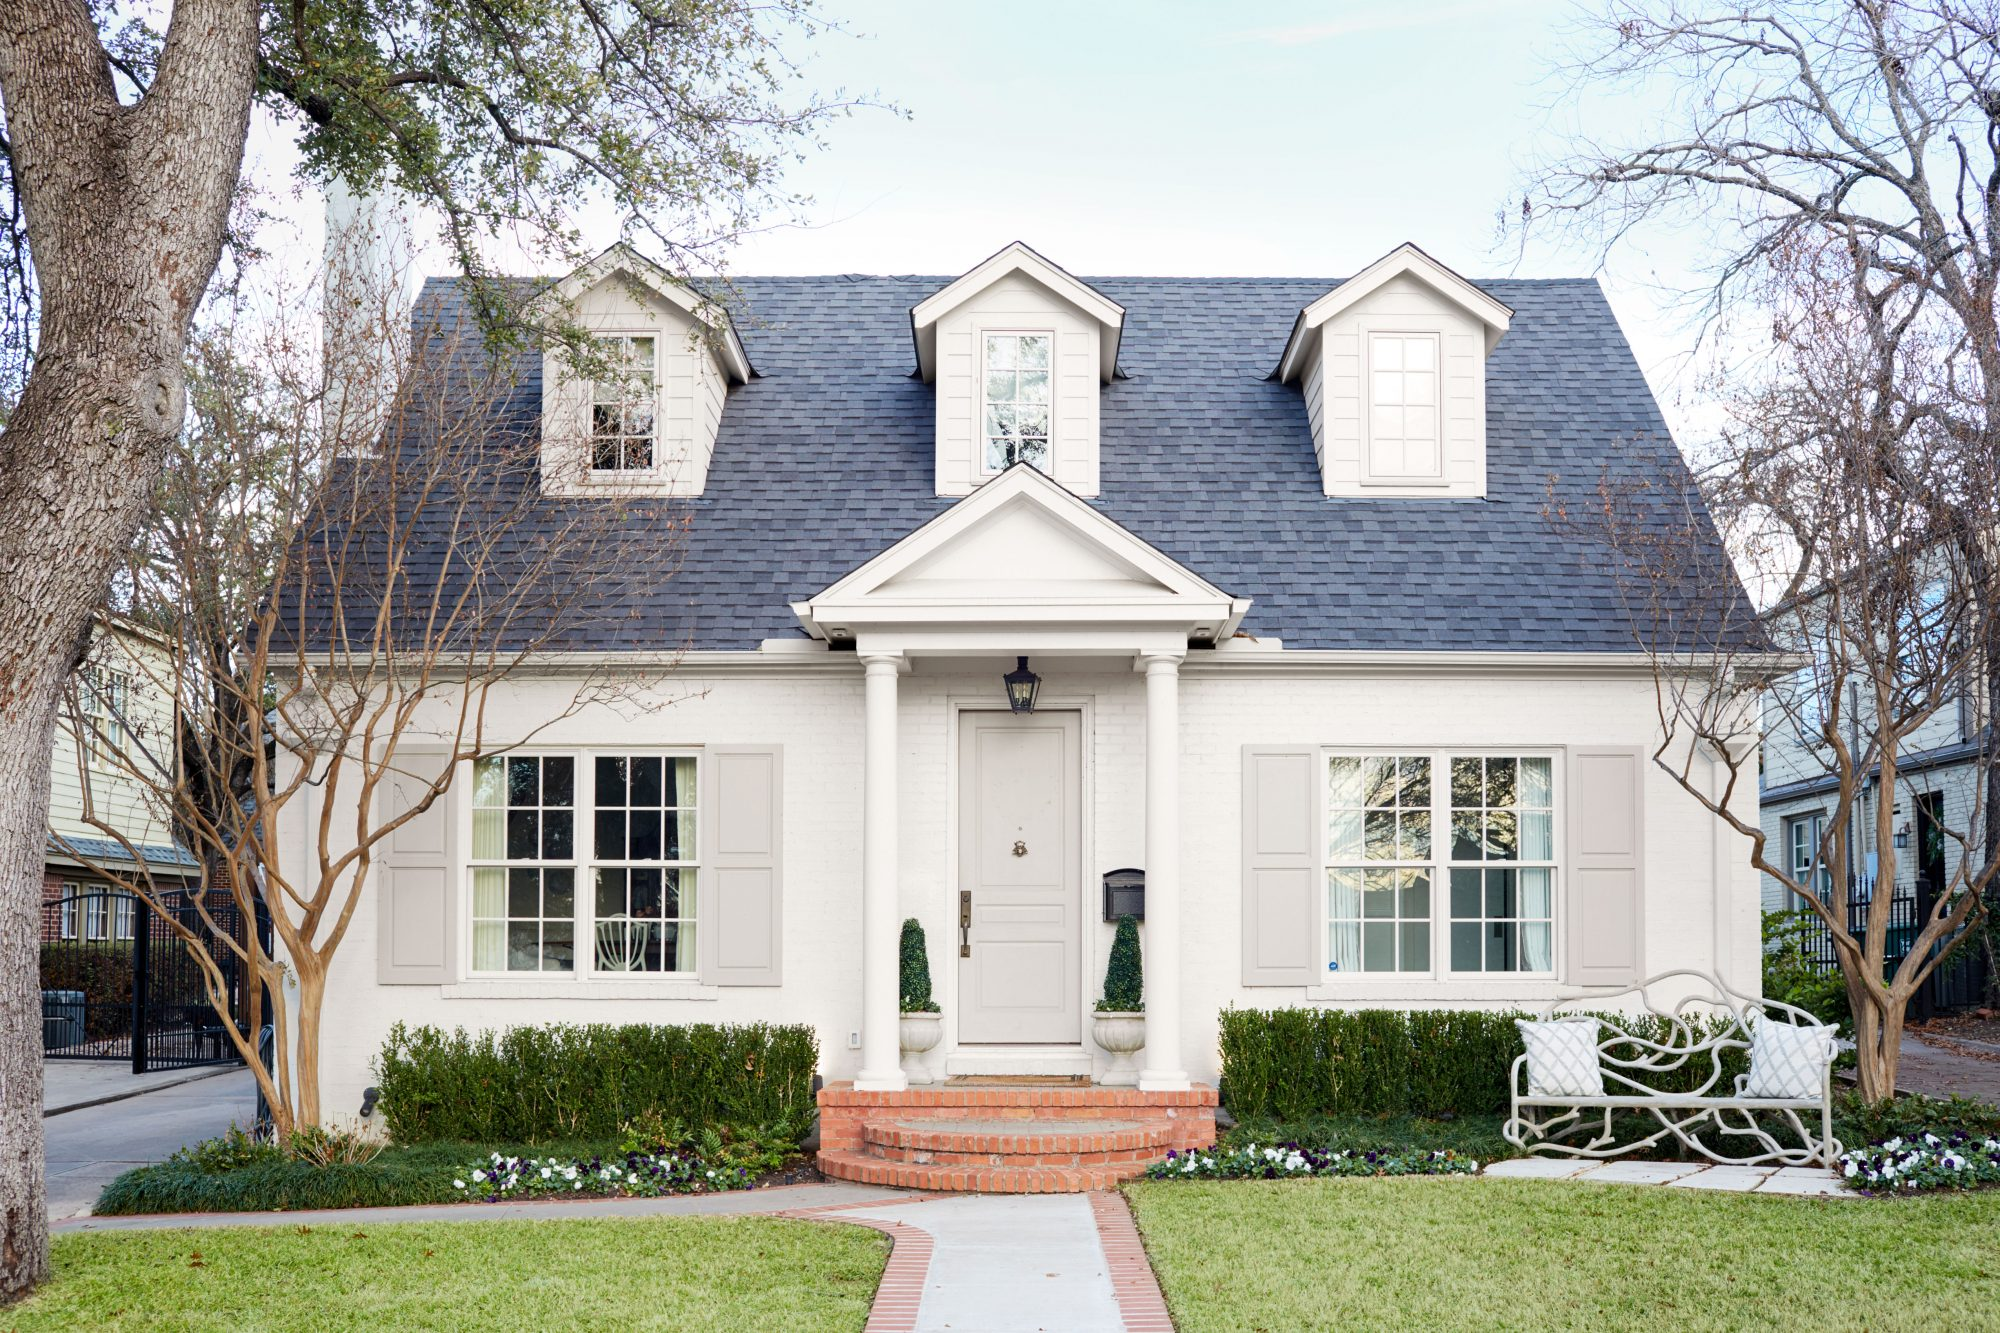 1935 Colonial home exterior with off-white color scheme